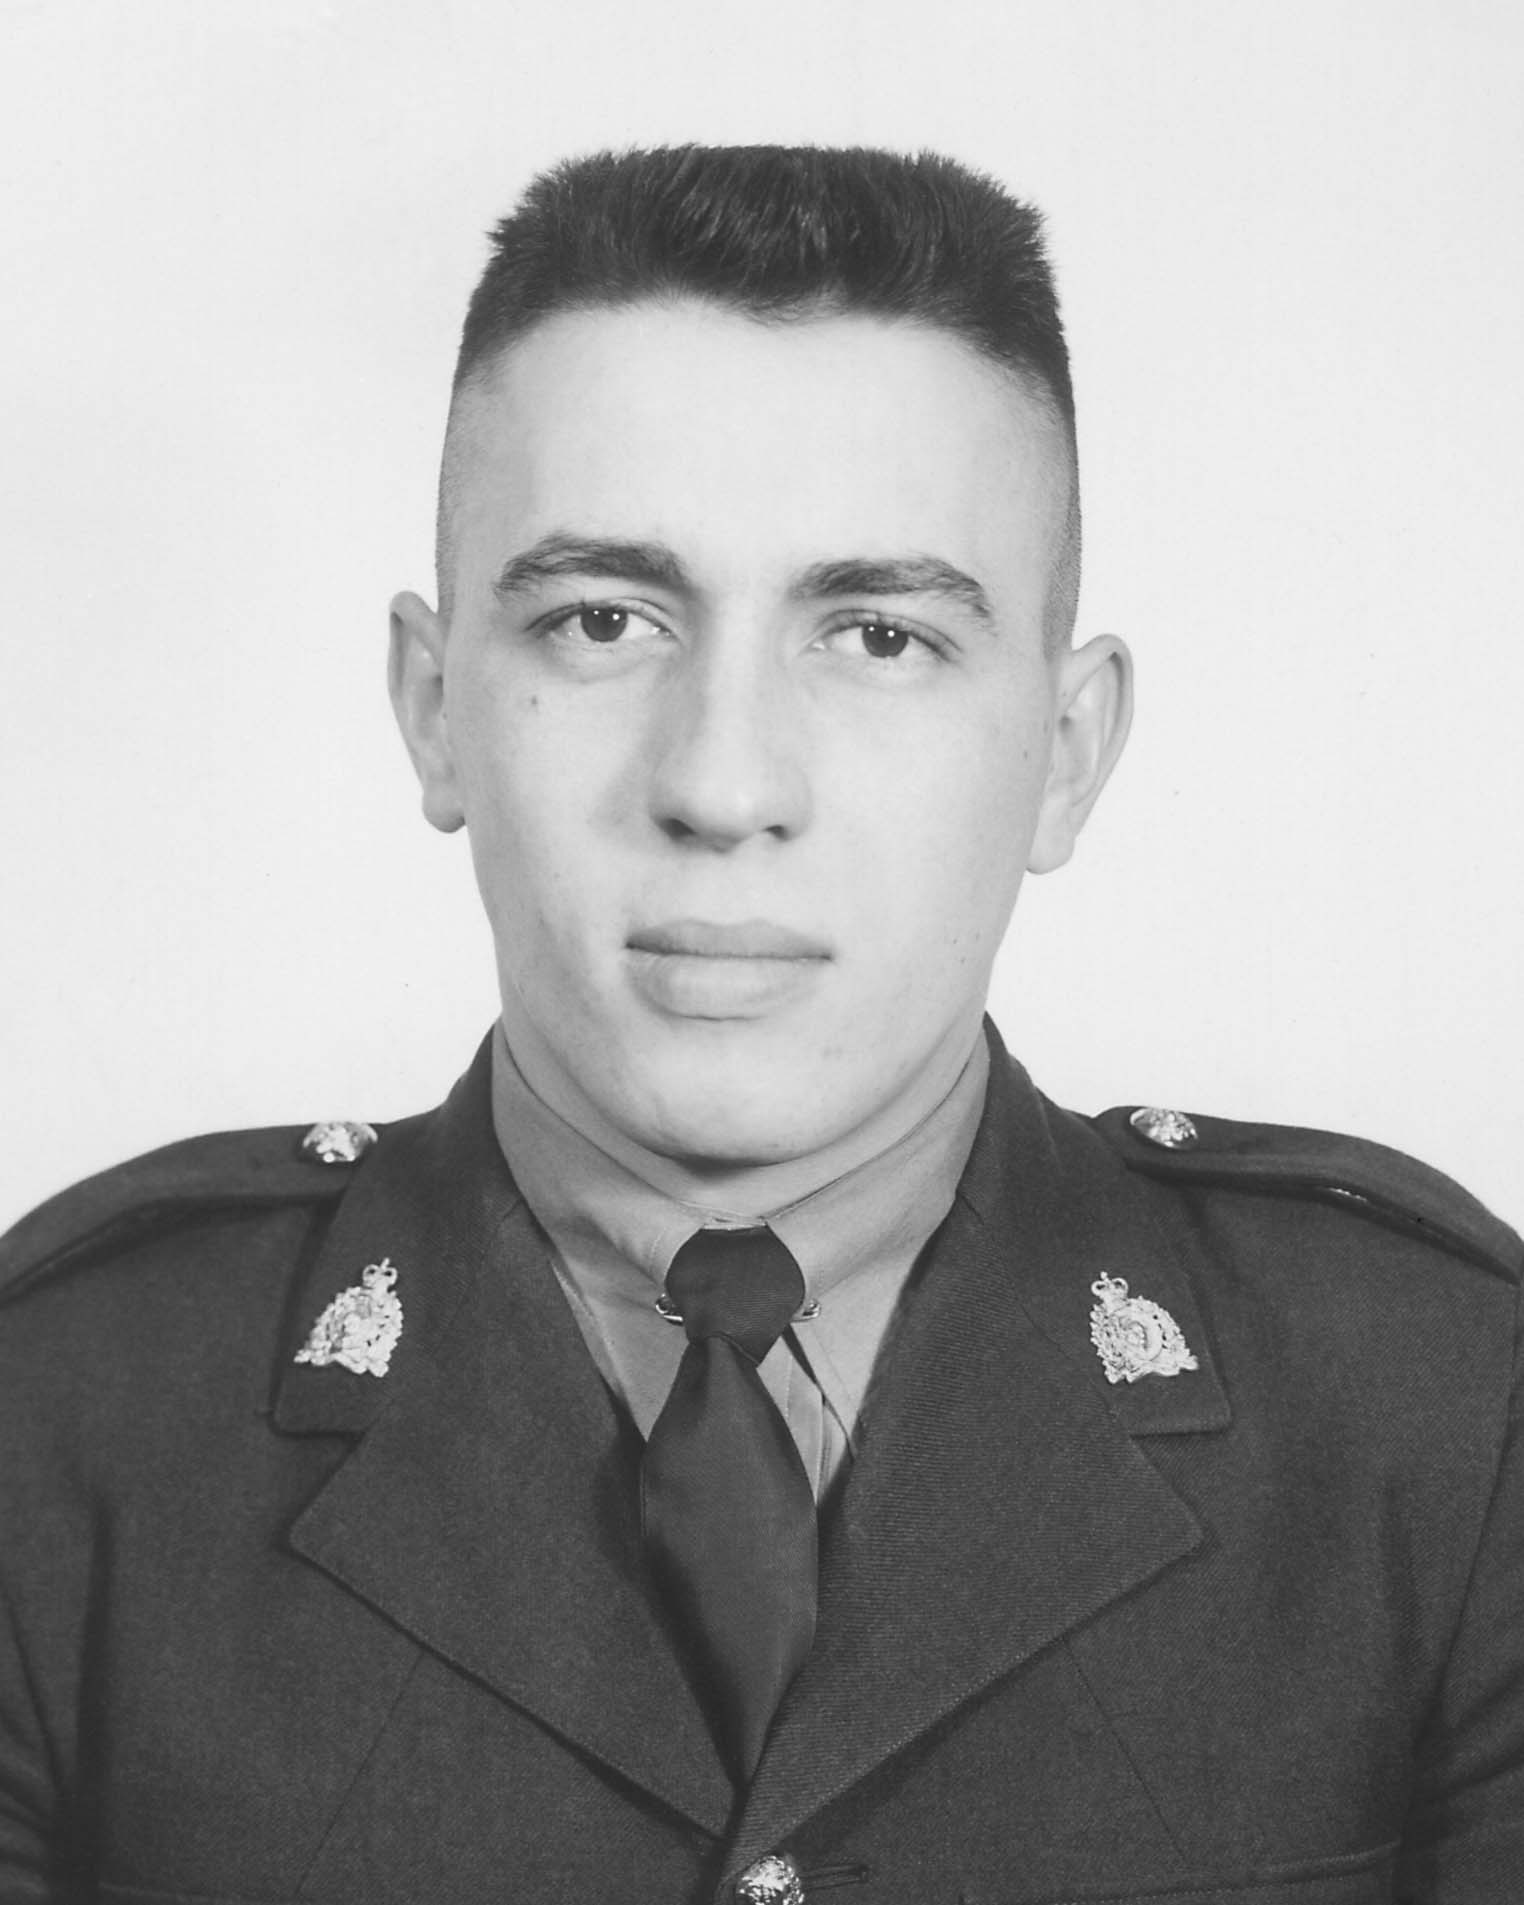 Second Class Constable Maurice Melvin Melnychuk